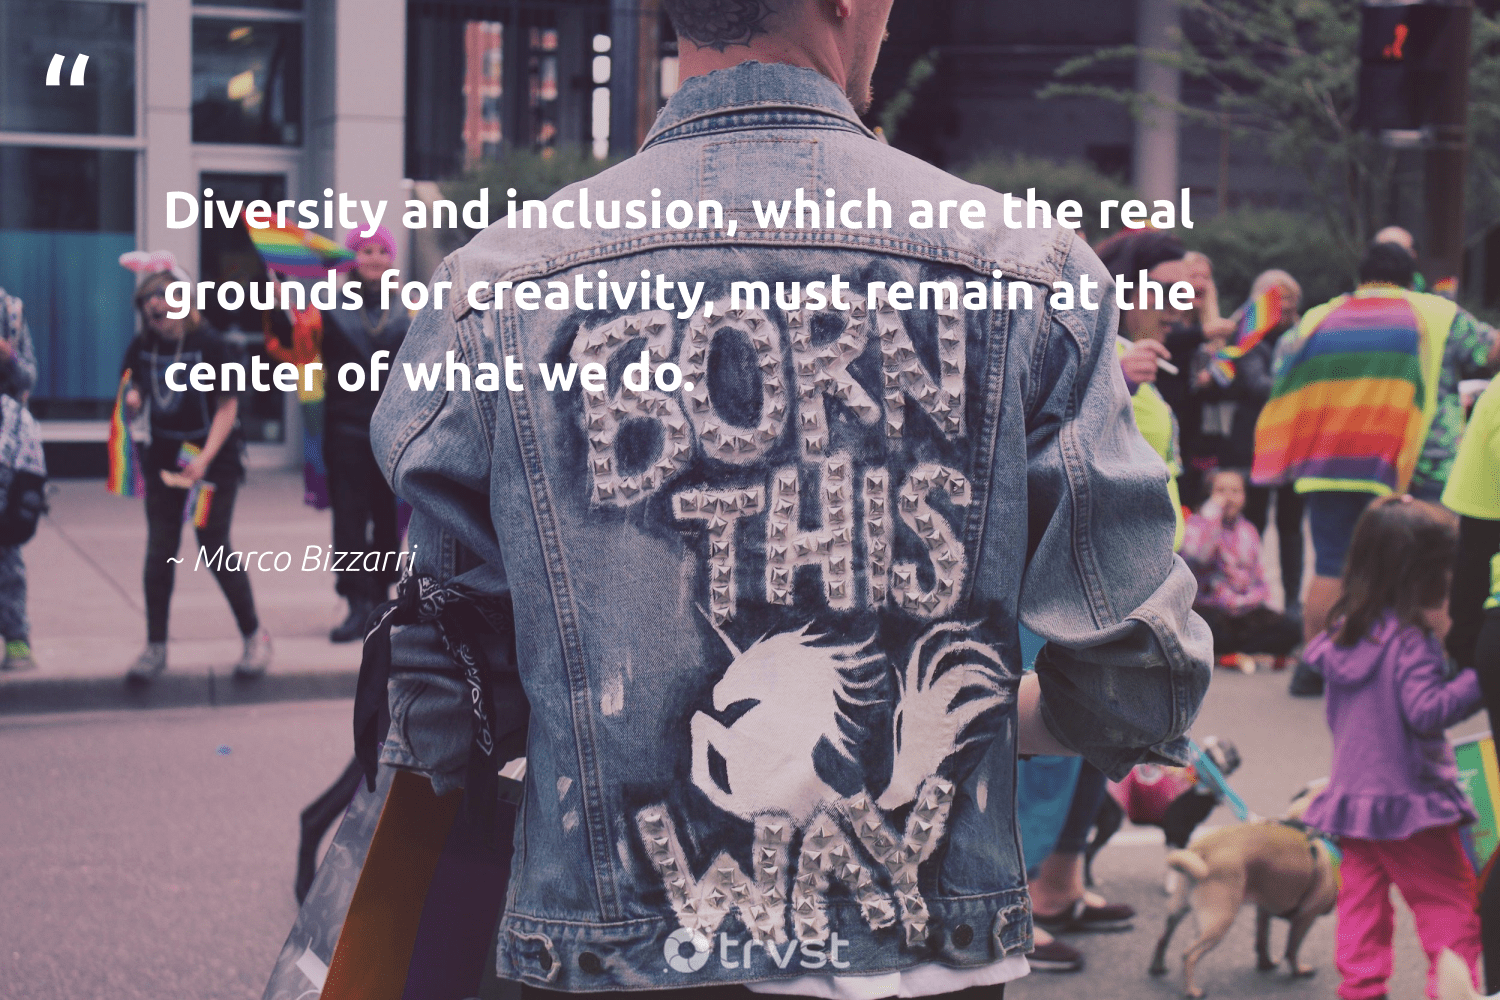 """Diversity and inclusion, which are the real grounds for creativity, must remain at the center of what we do.""  - Marco Bizzarri #trvst #quotes #diversity #inclusion #creativity #representationmatters #discrimination #makeadifference #socialchange #takeaction #giveback #bethechange"